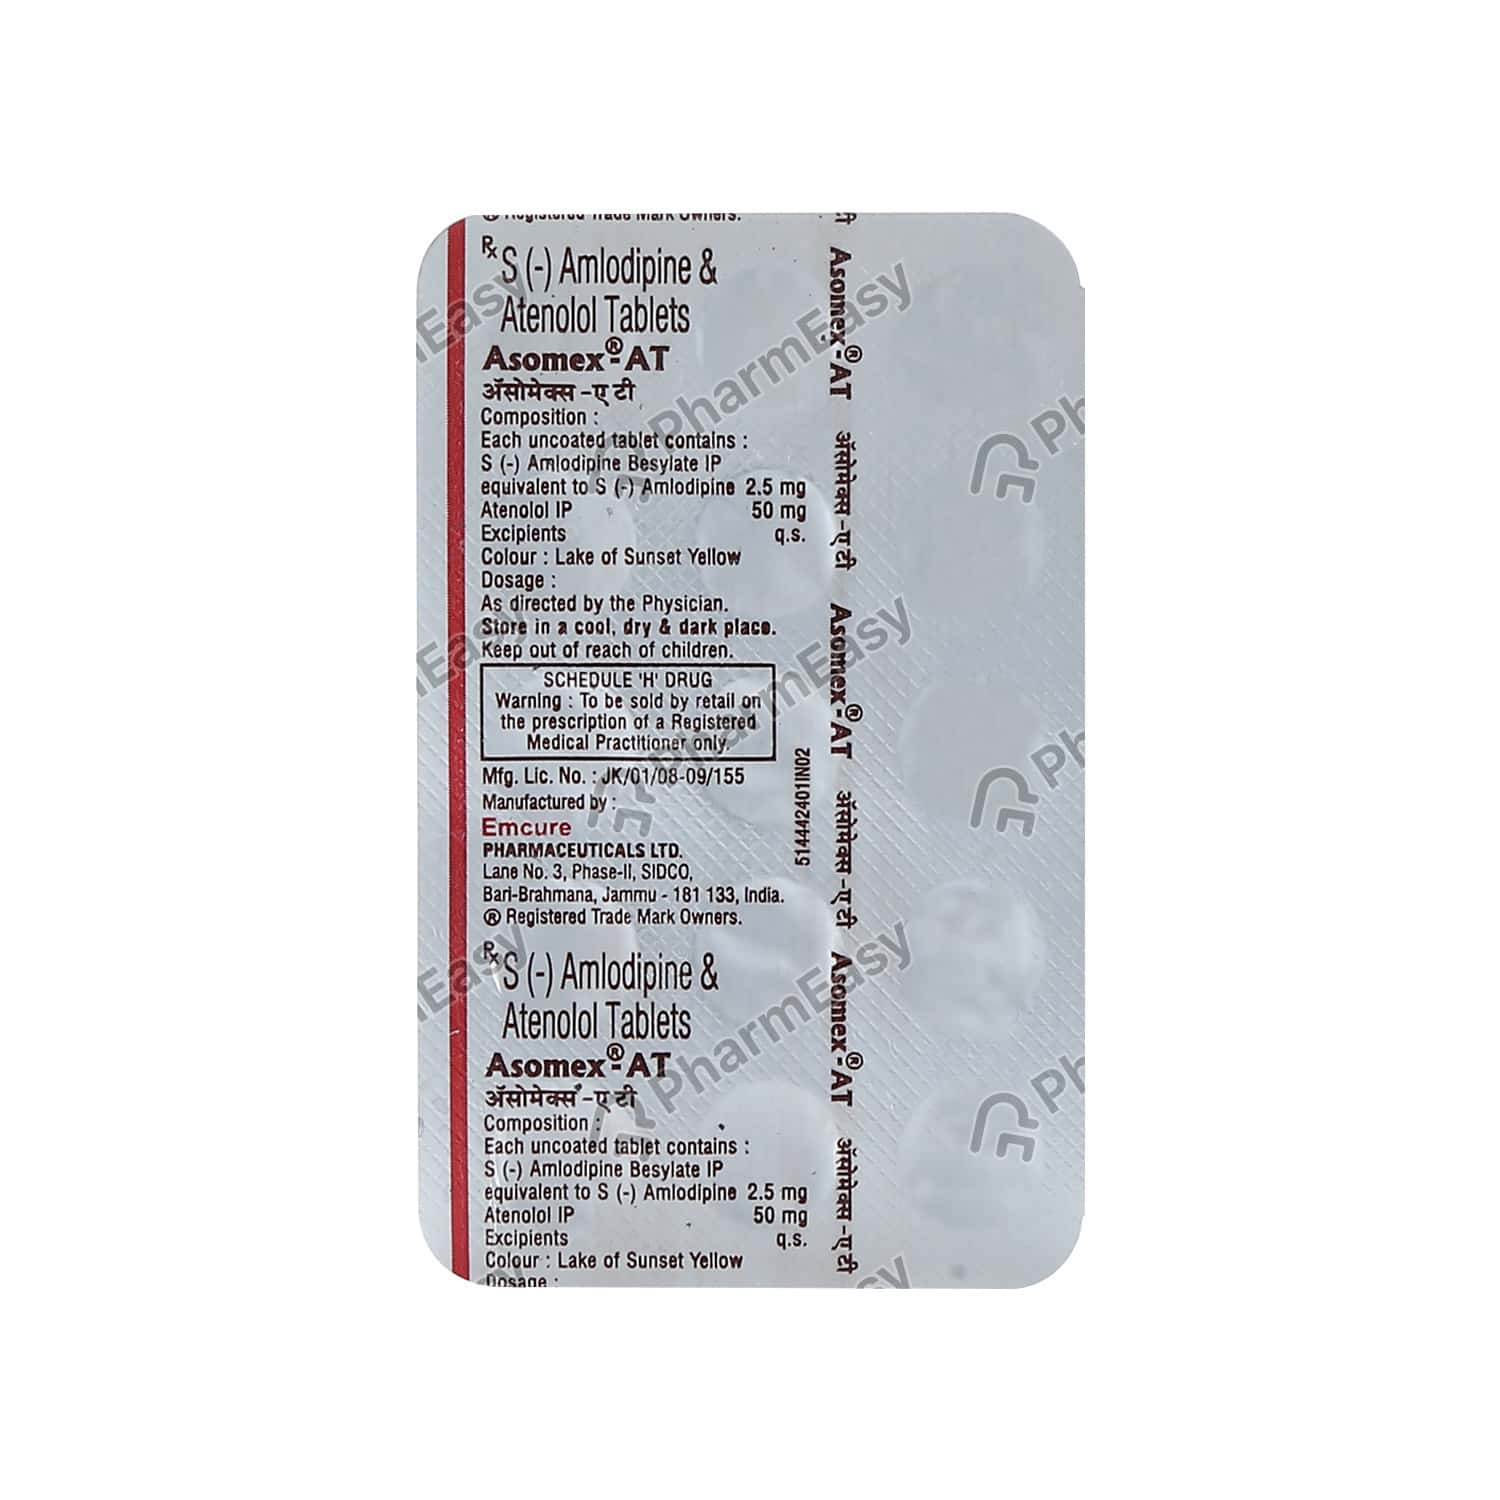 Asomex At 2.5mg 15's Tab